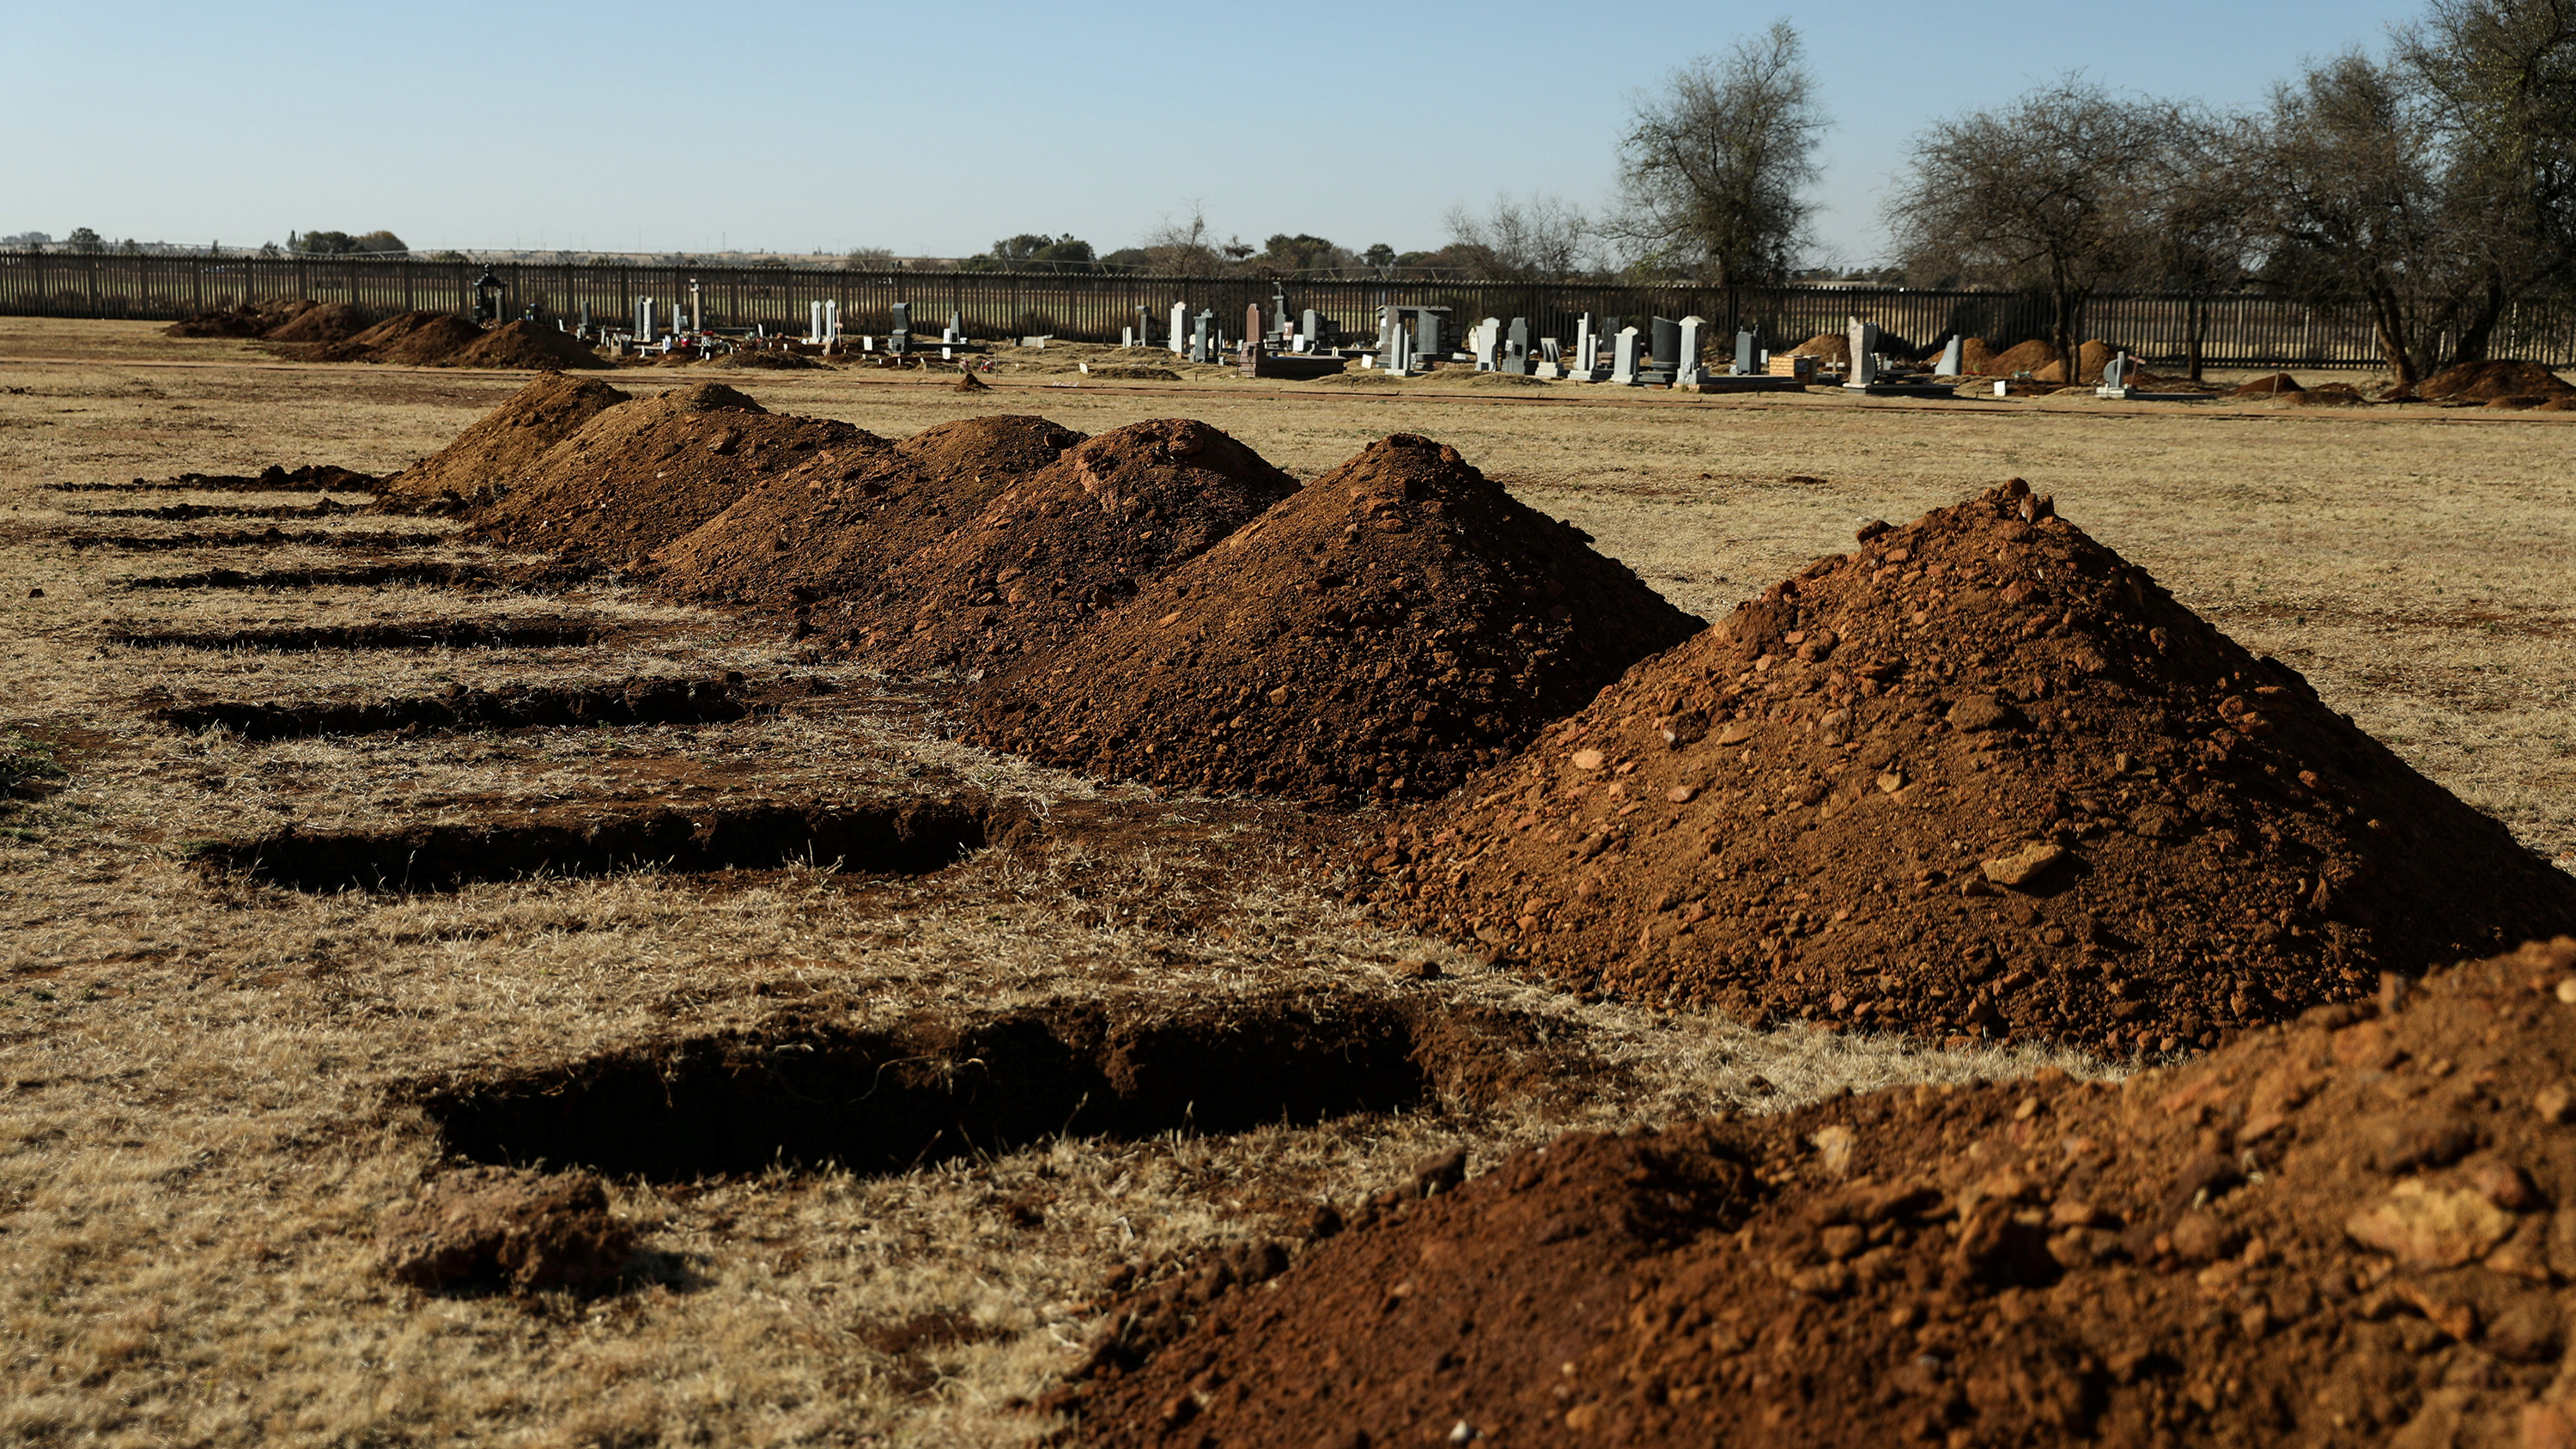 The photo shows mounds of freshly turned dirt next to open graves.